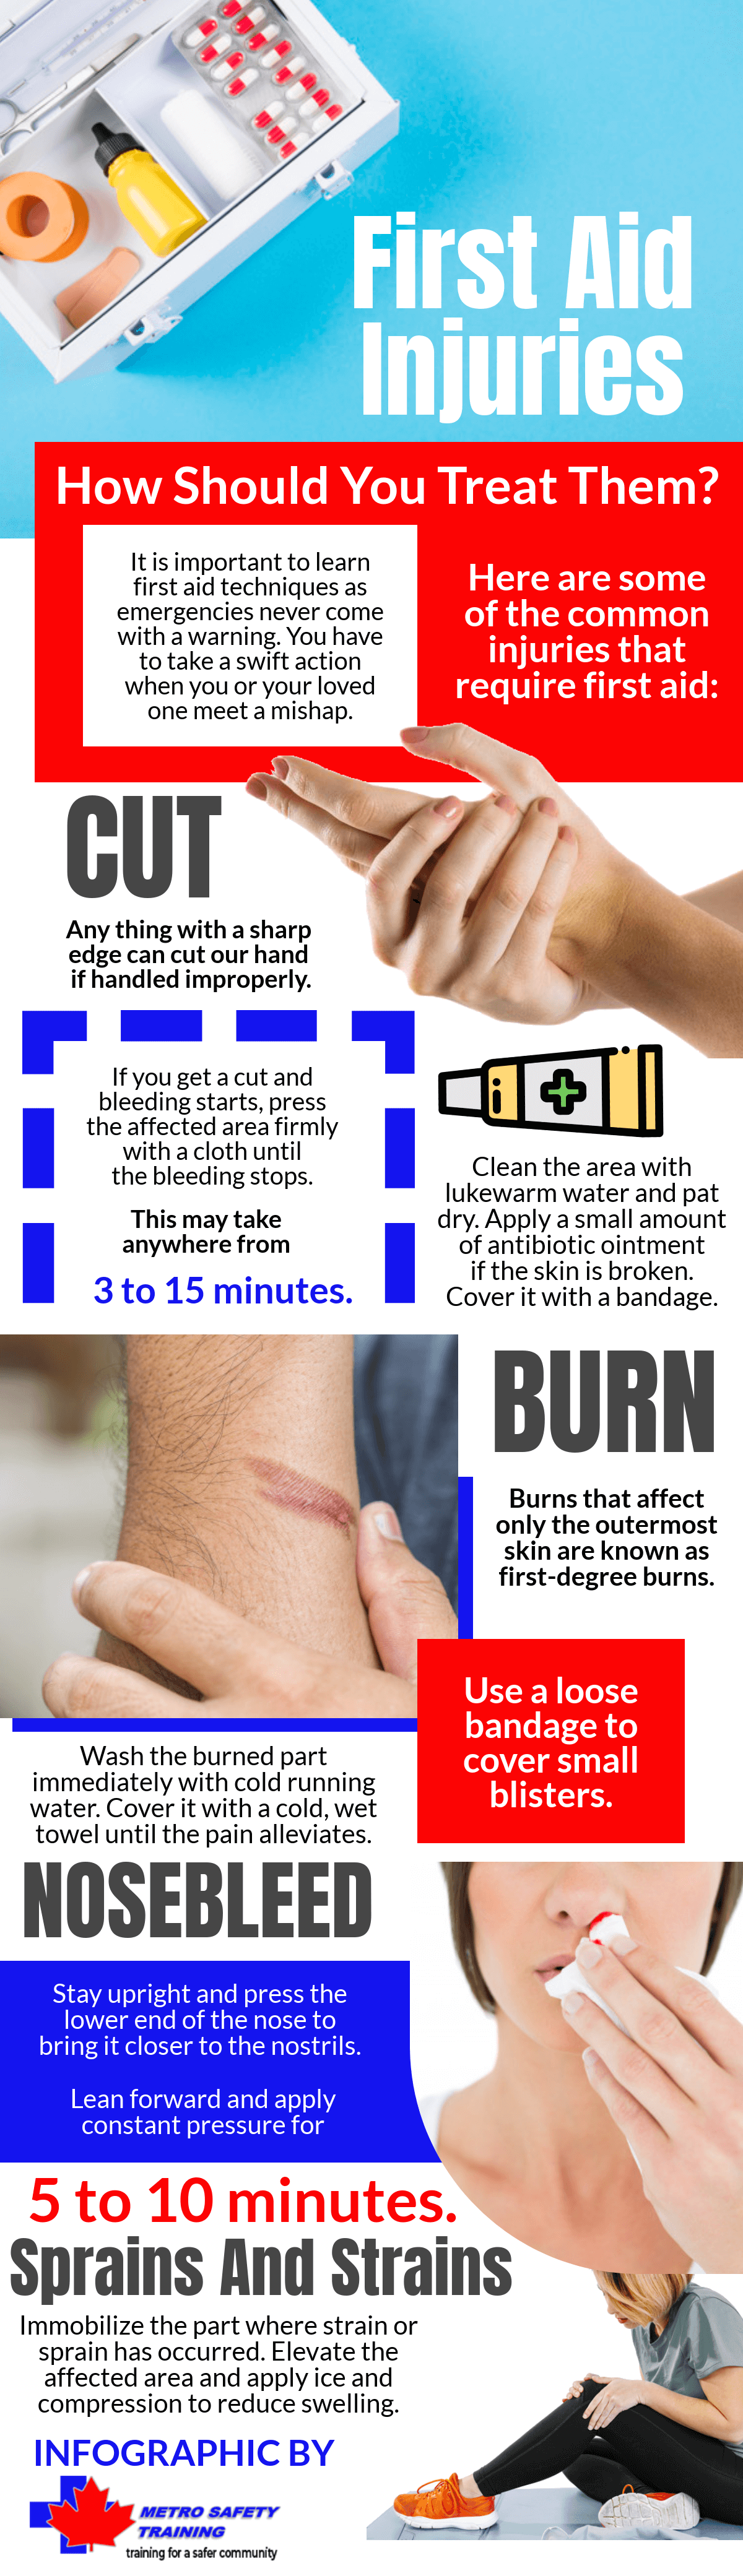 First Aid Injuries - How Should You Treat Them